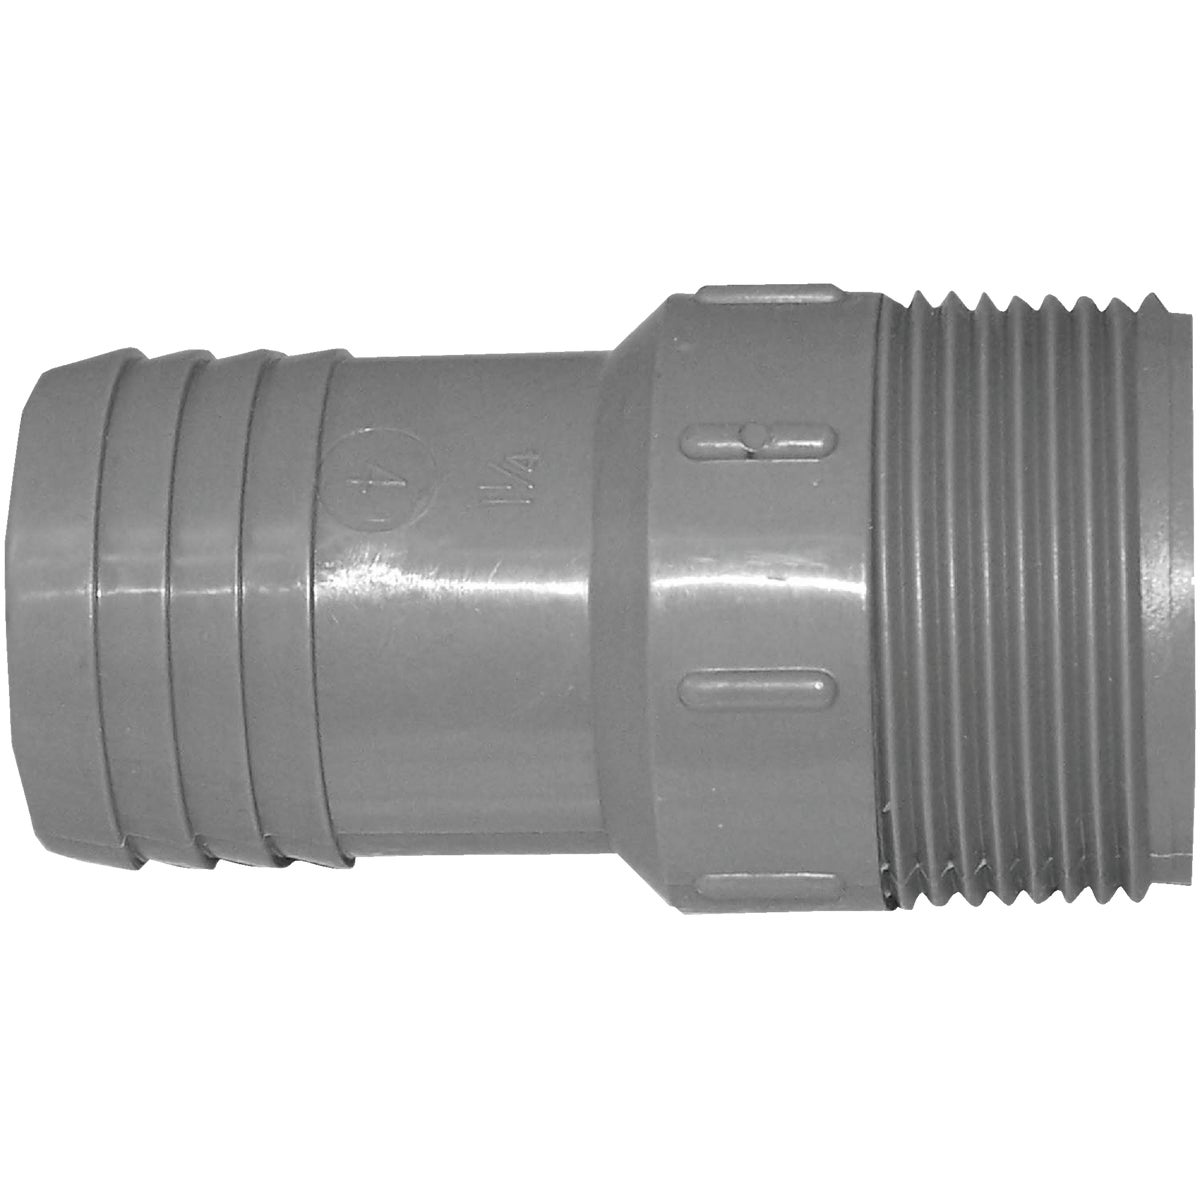 "1-1/4"" MIPXINS ADAPTER - 350414 by Genova Inc"